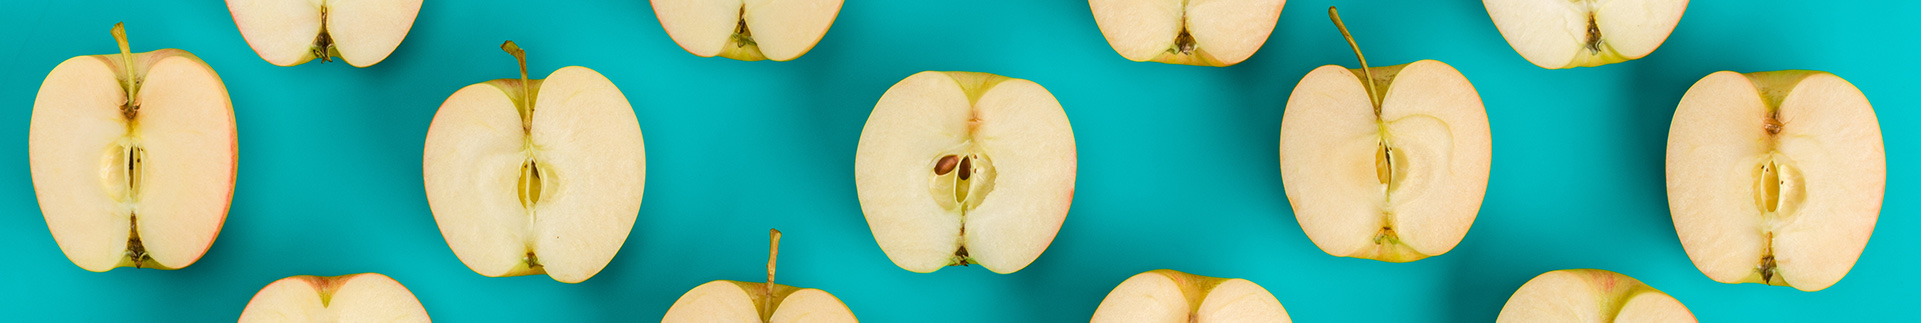 Apples against a blue-green background